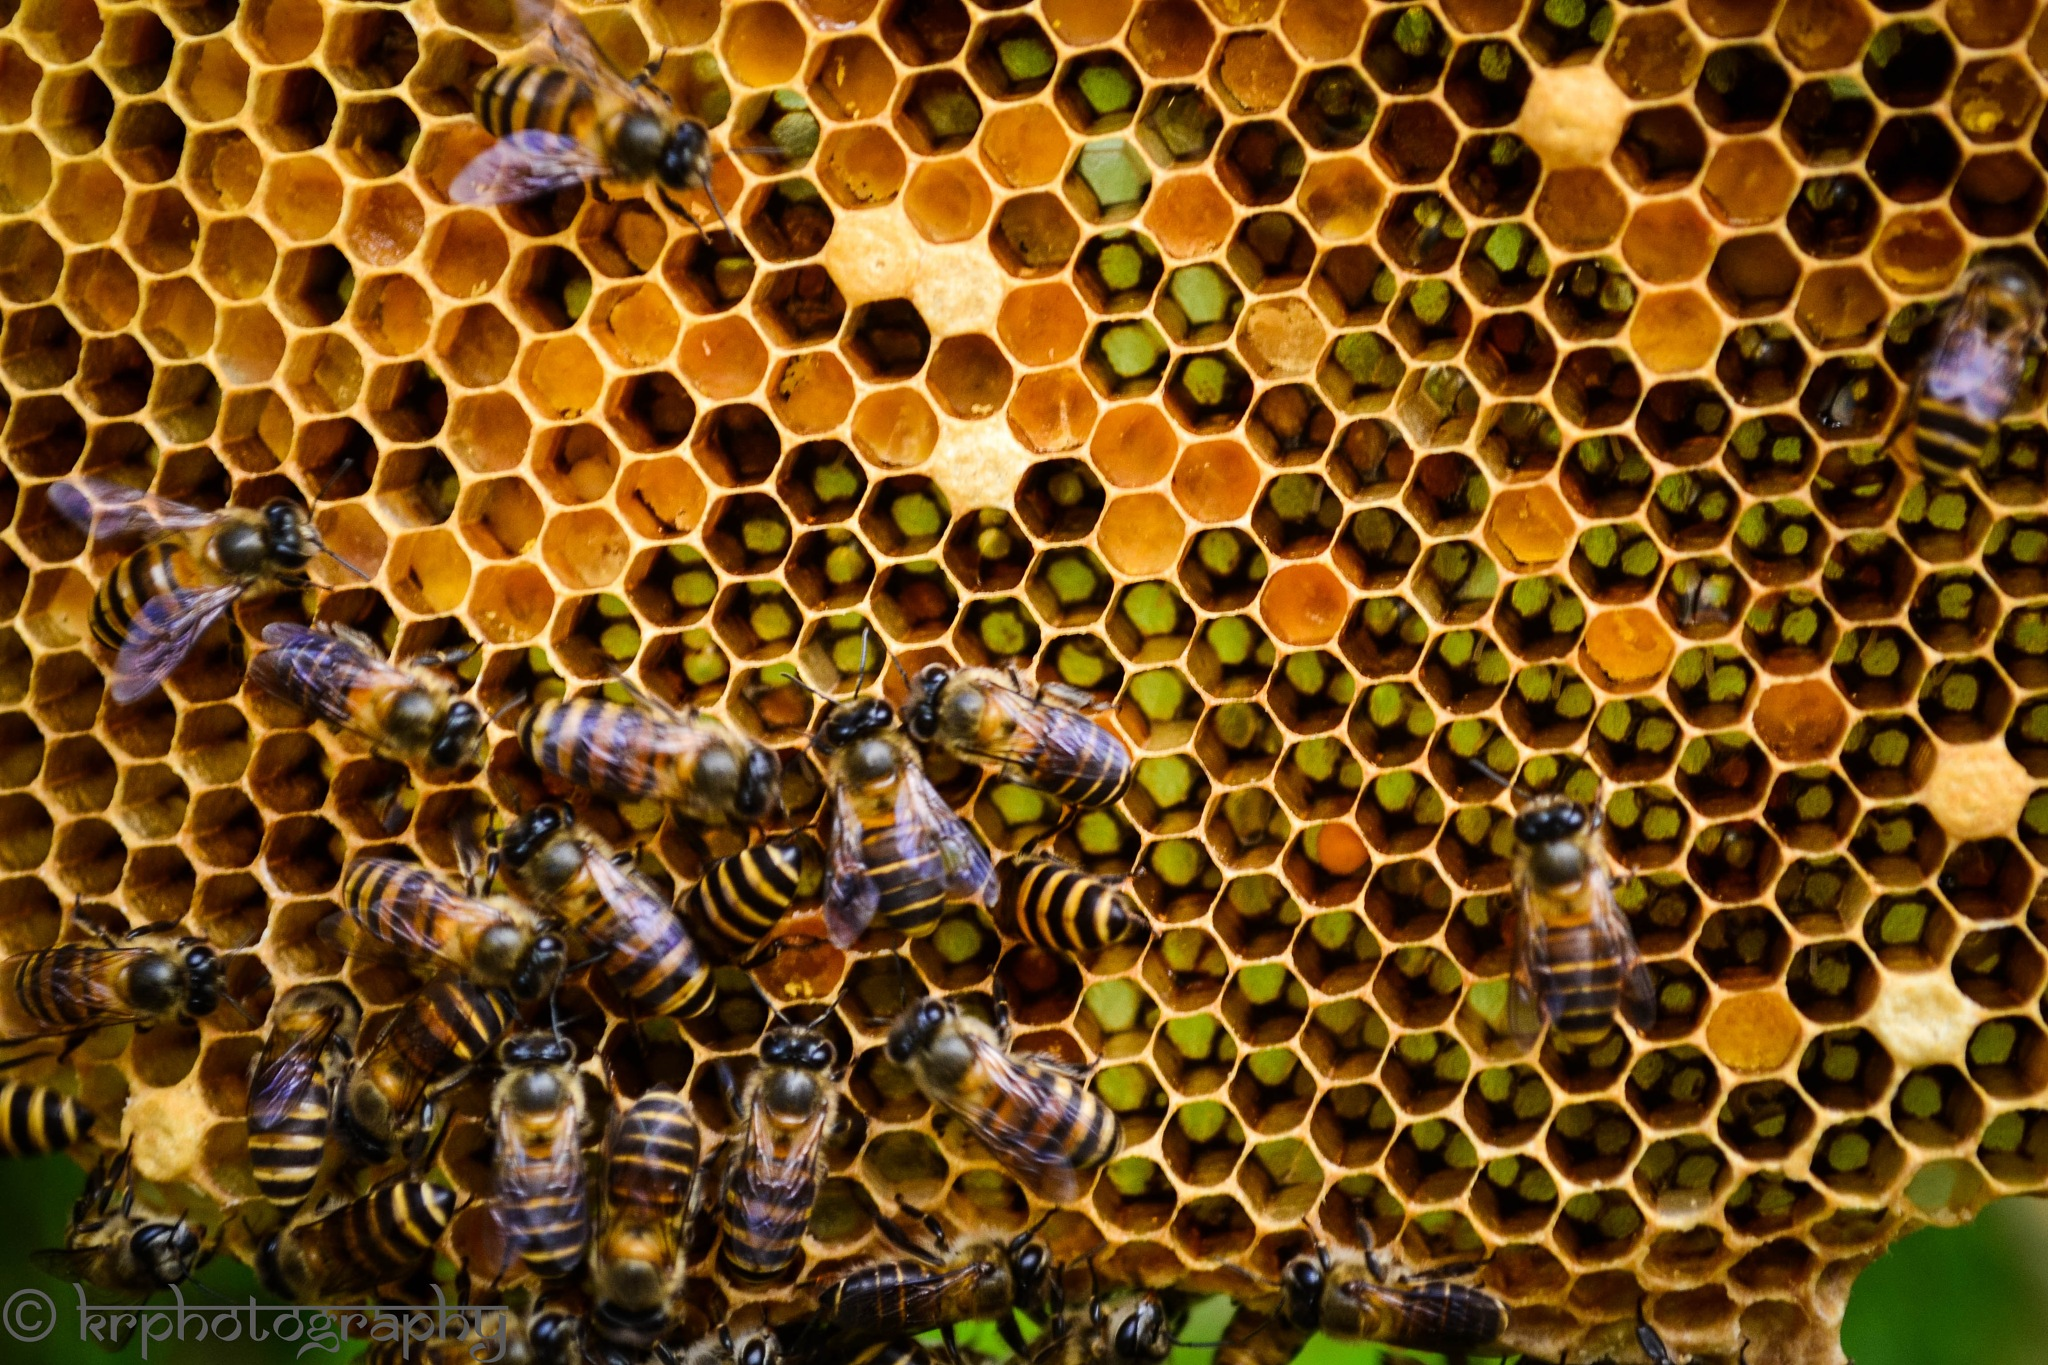 Honey Bee Farm Sabah by KR DeMoN